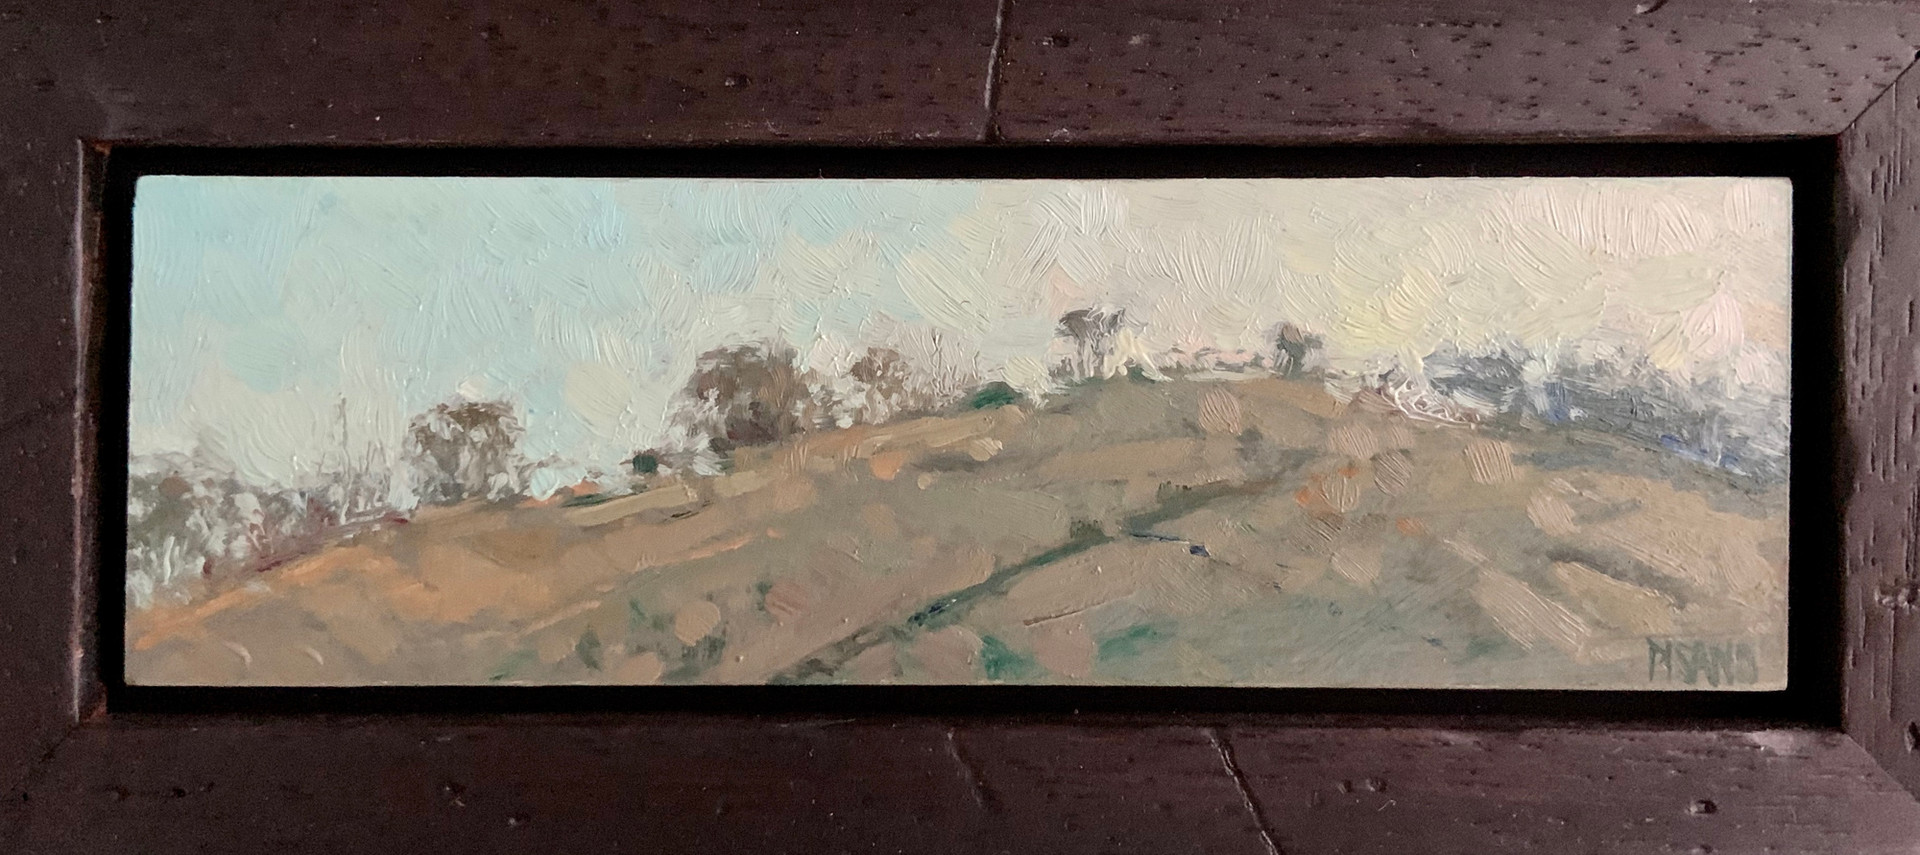 Grazin' Field by Crista Pisano, oil 2x6.5 $725